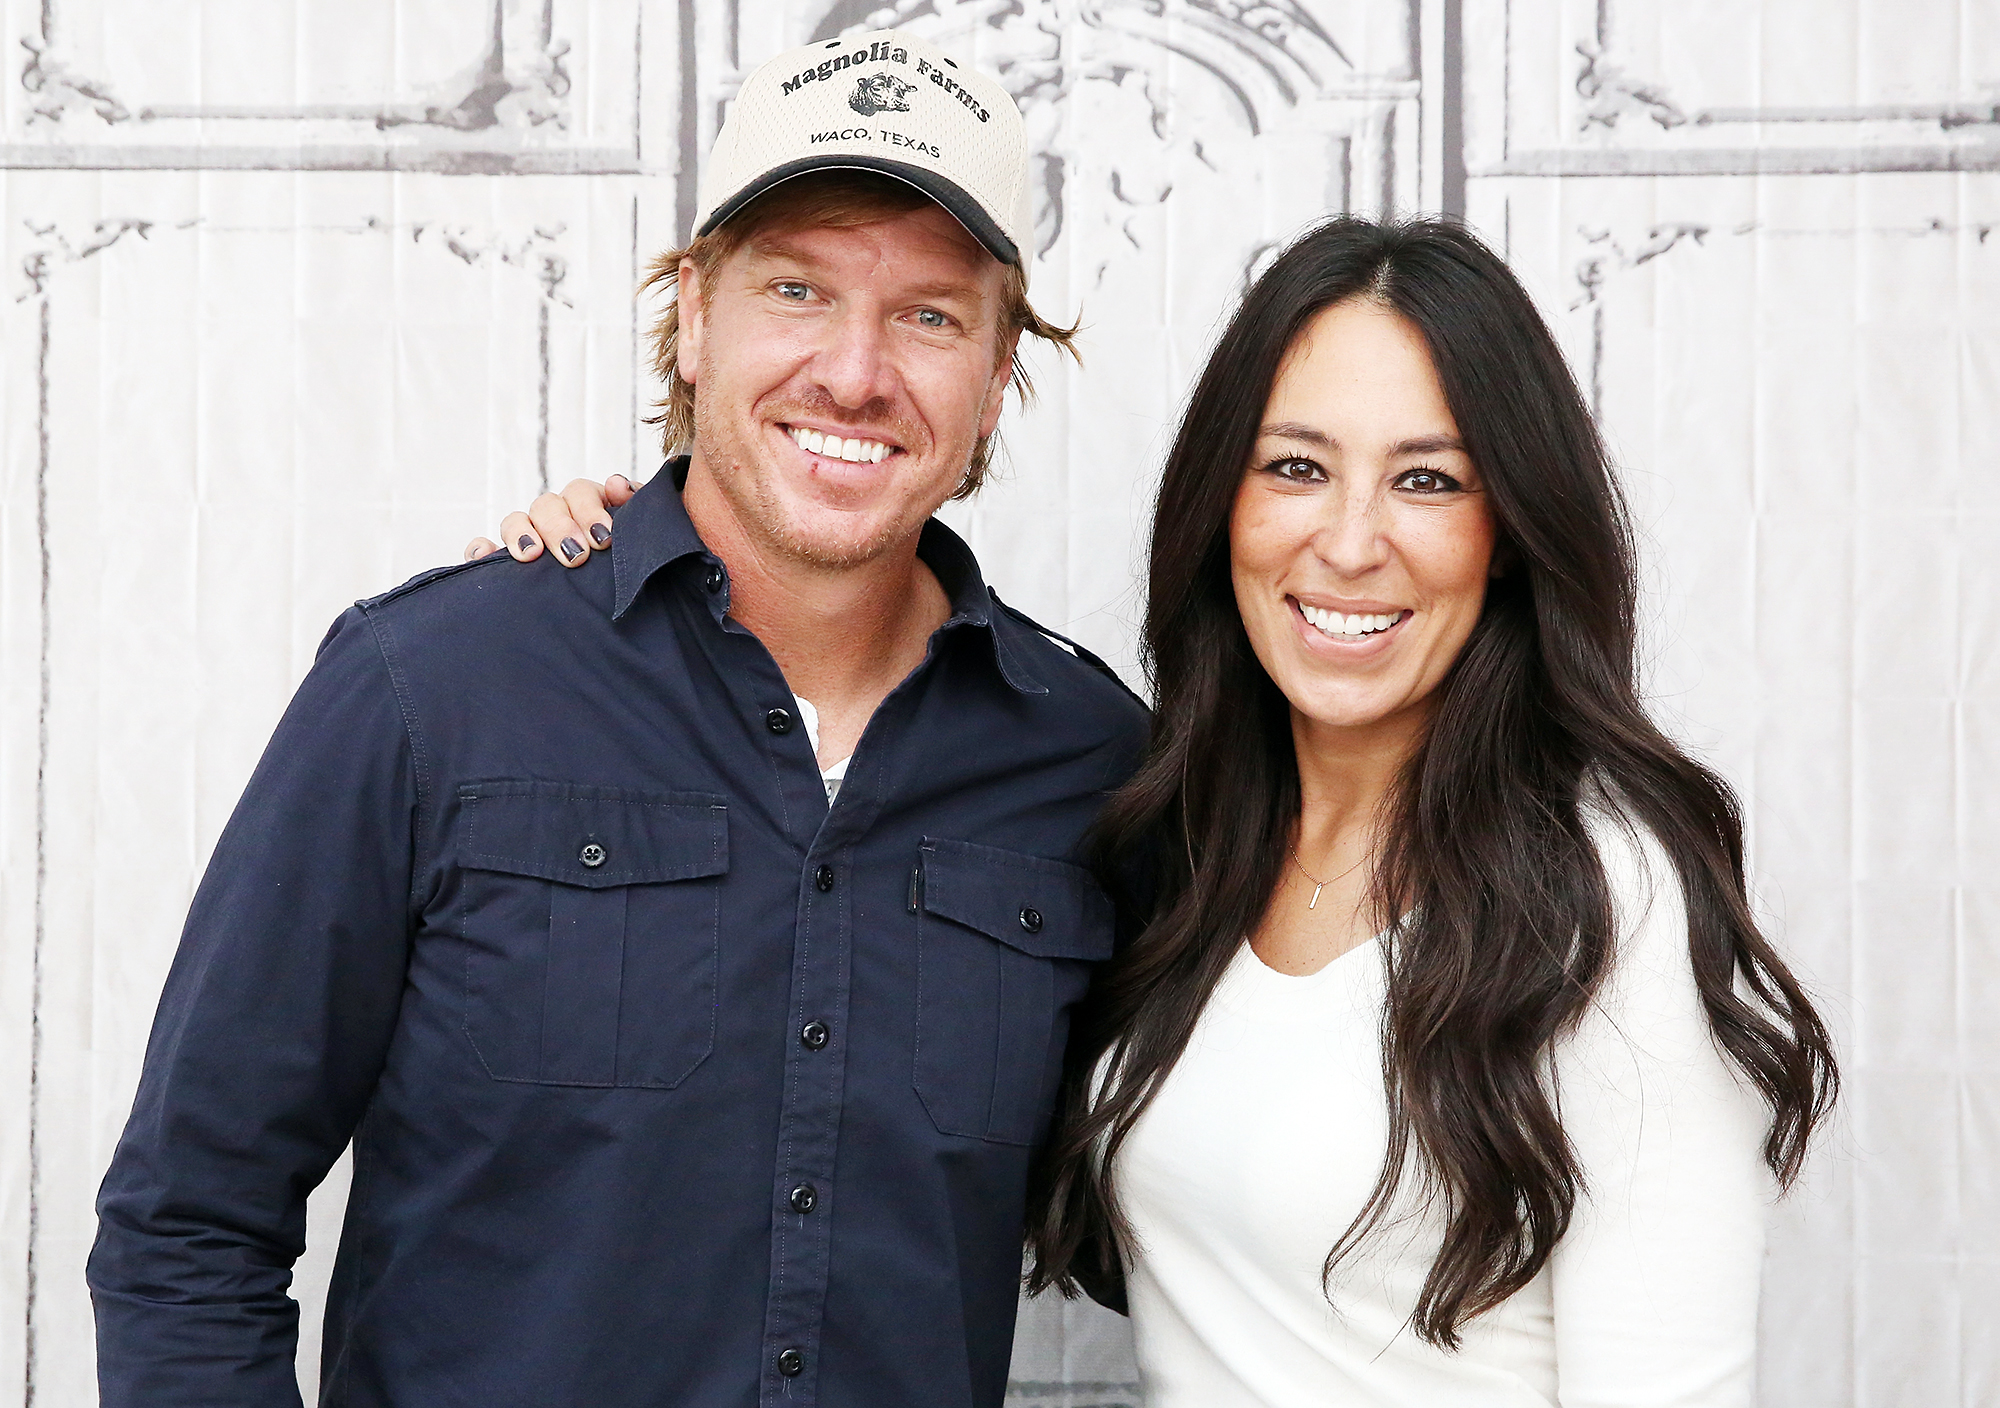 Chip Gaines Joanna Gaines Pregnant At 40